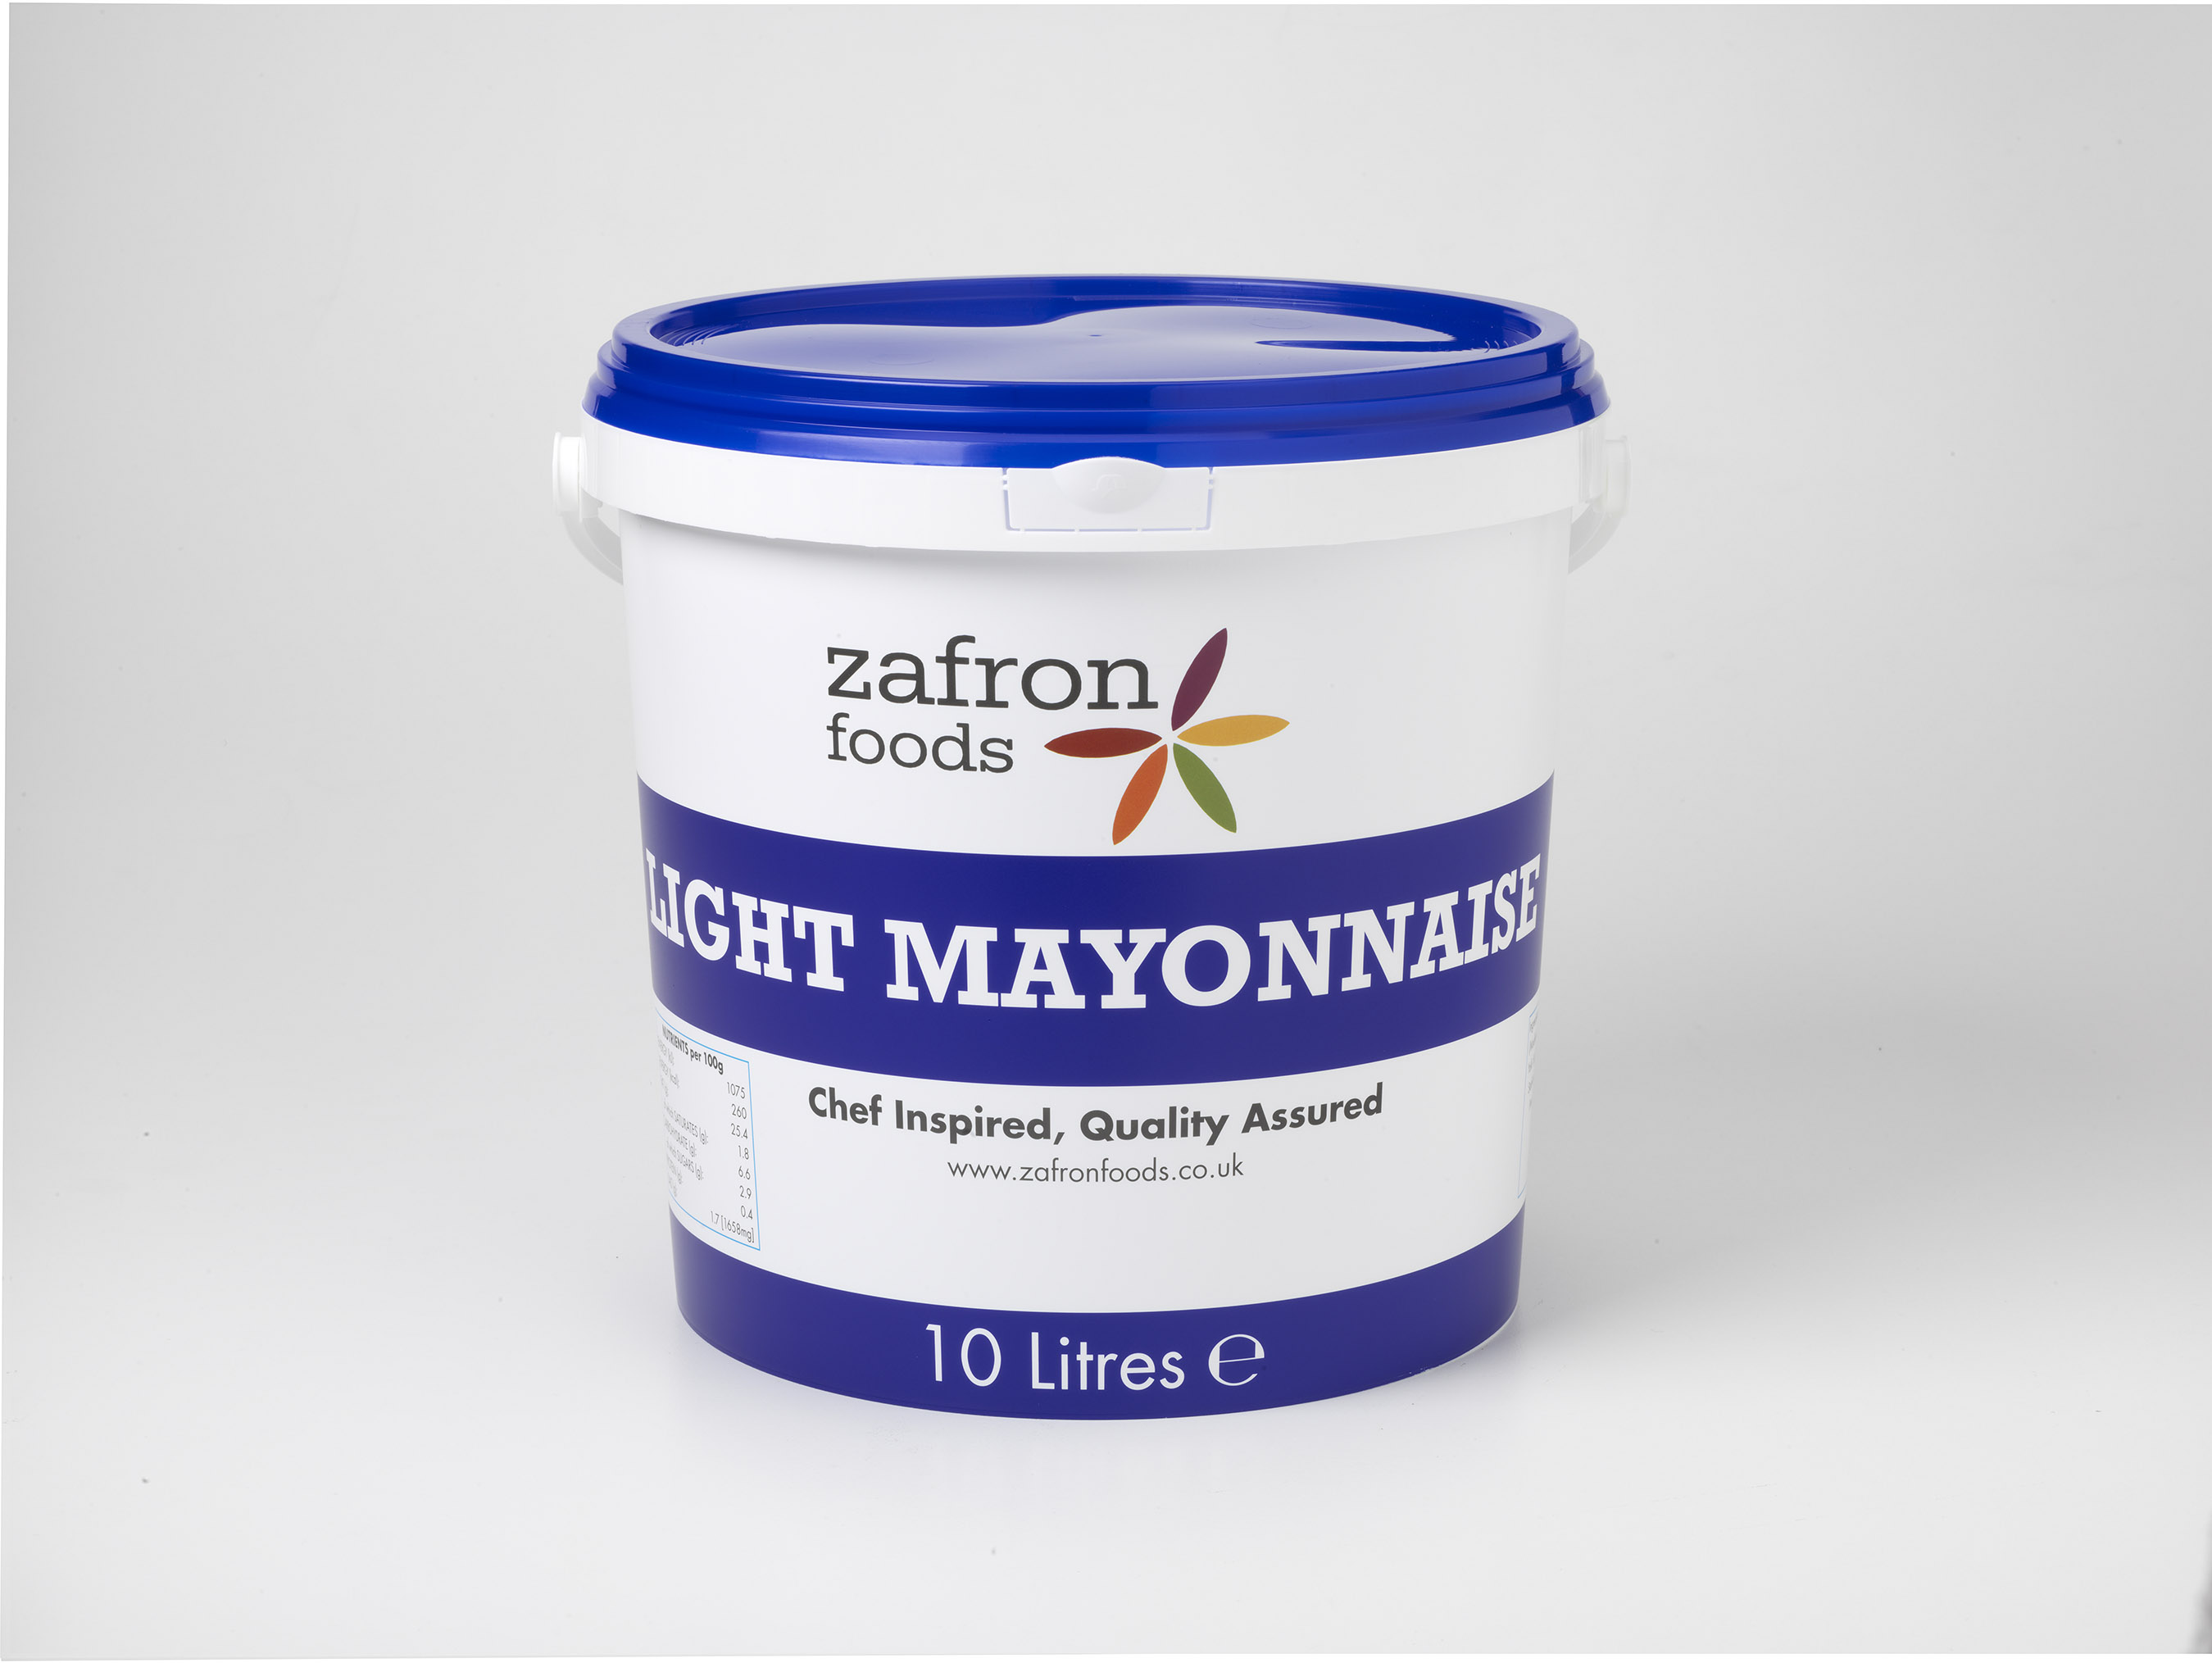 Zafron Light Mayonnaise 10L